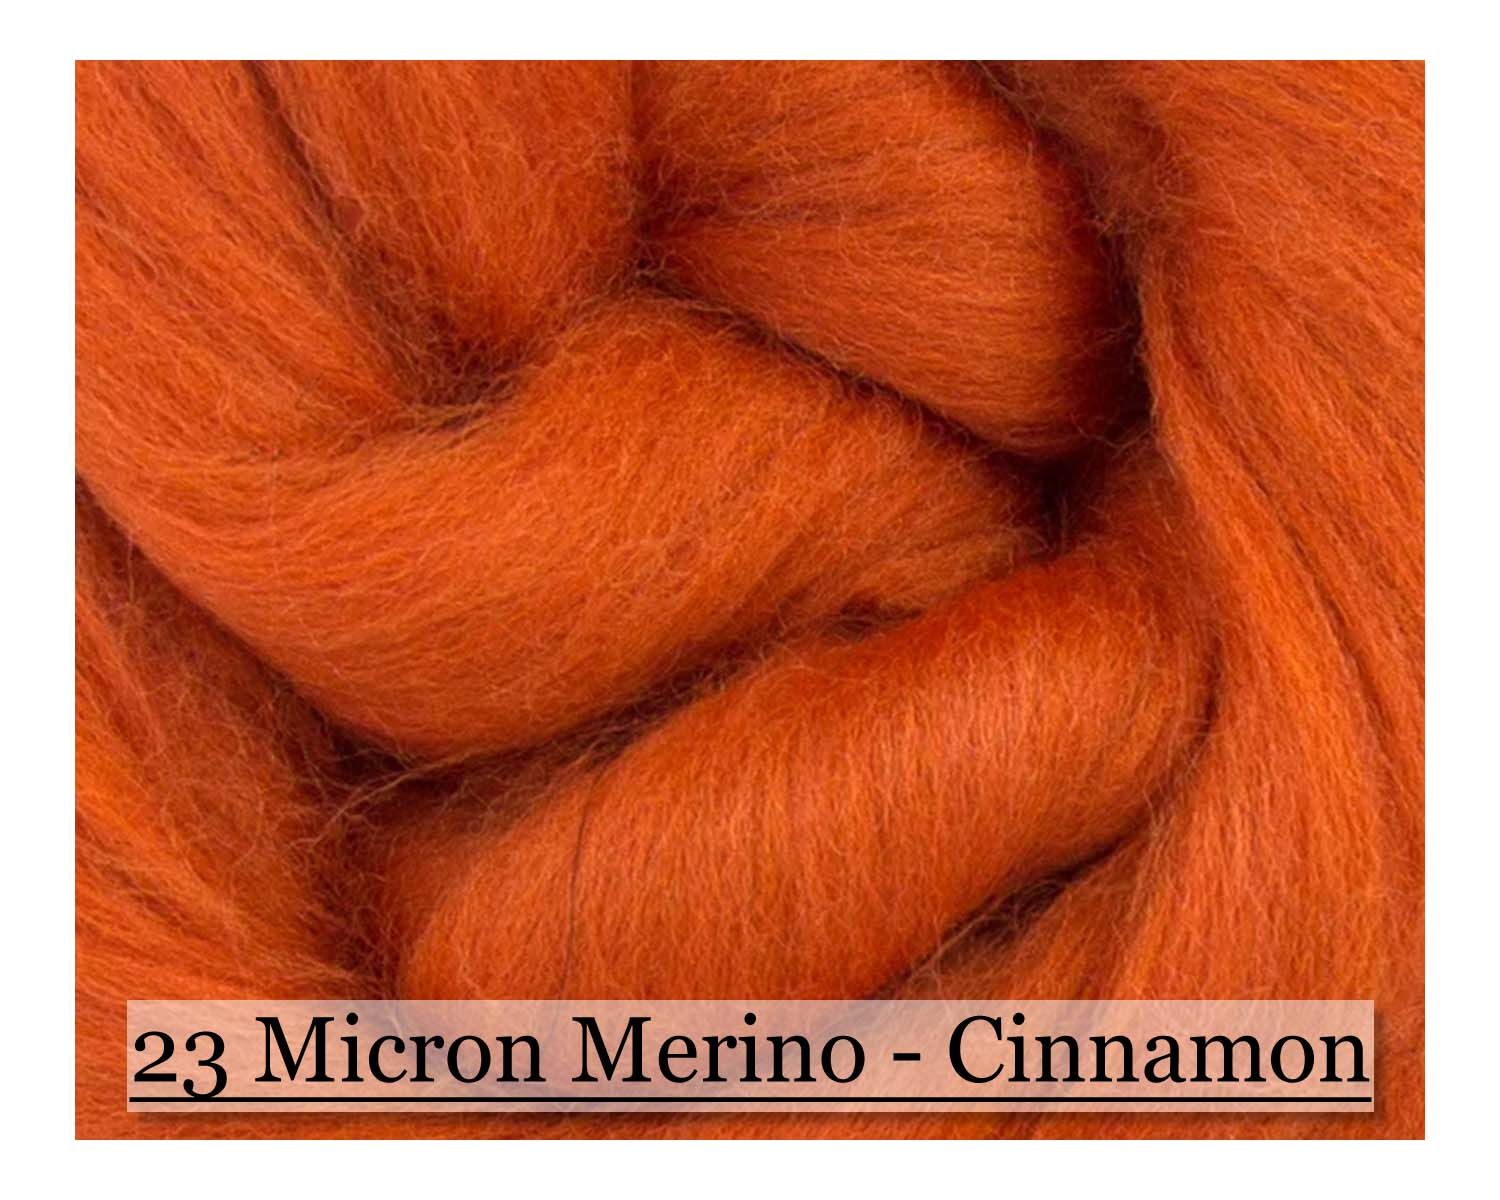 Cinnamon -  Merino Wool Top - 23 Micron